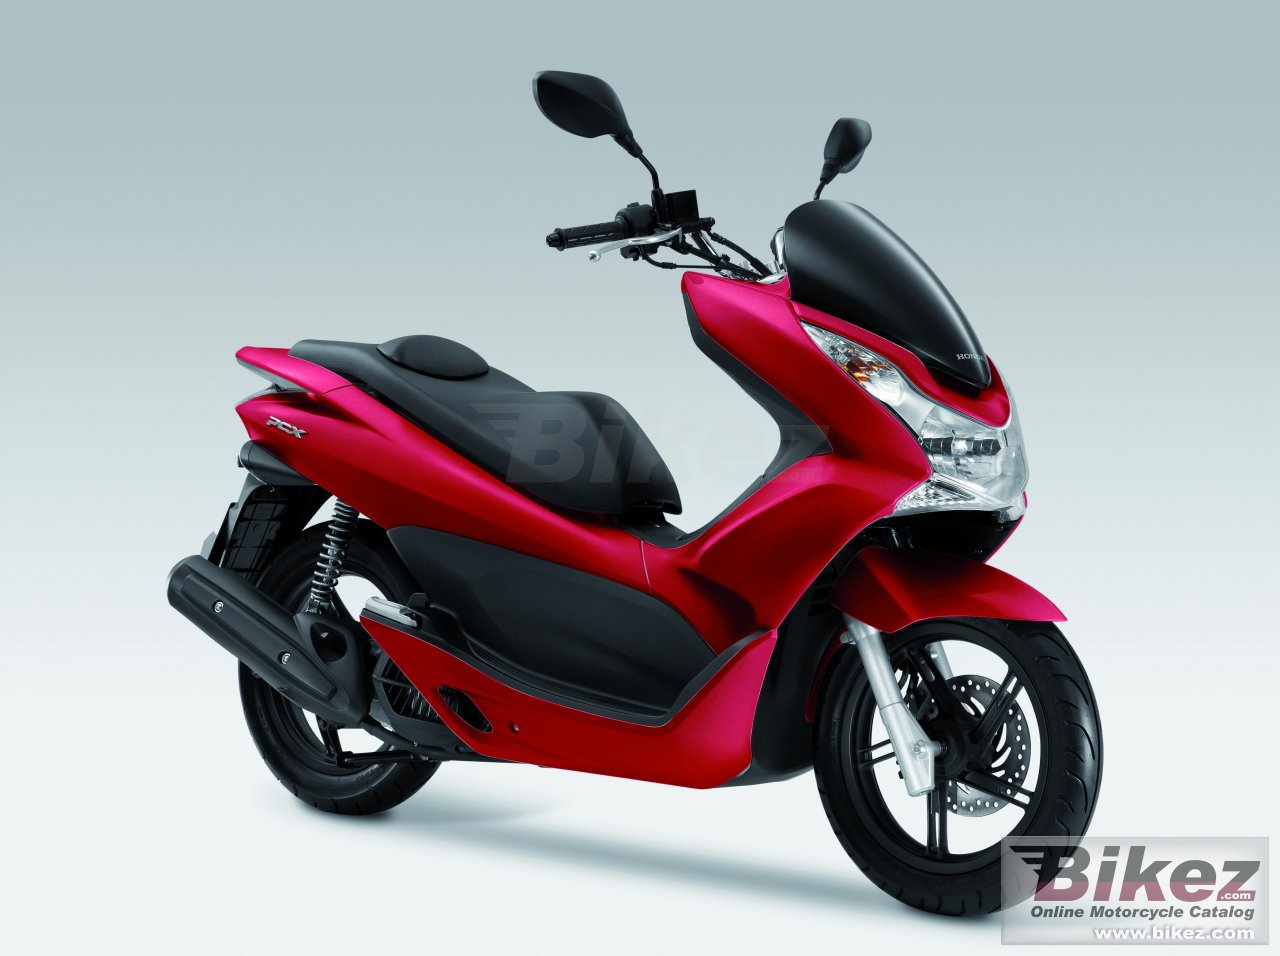 Big Honda pcx picture and wallpaper from Bikez.com